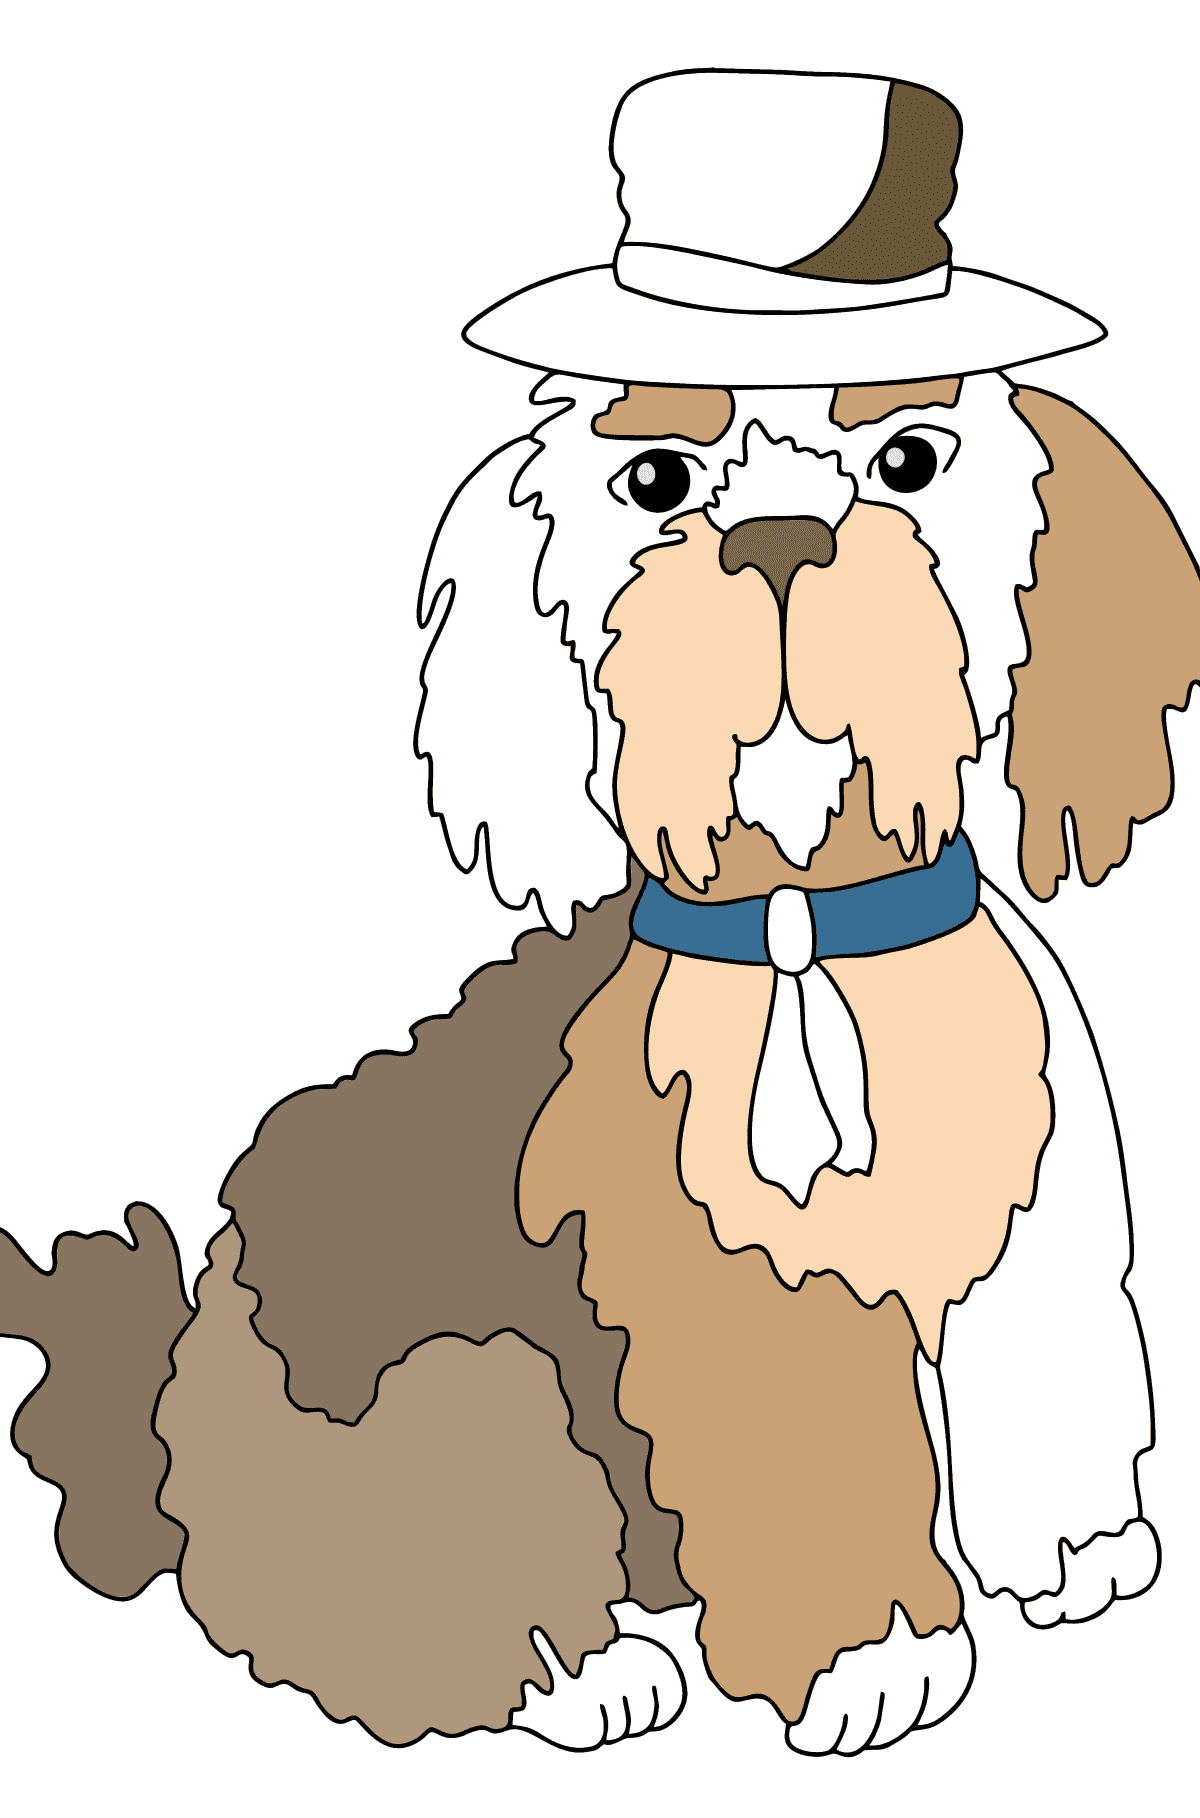 Coloring Page - A Dog in a Fancy Hat for Children